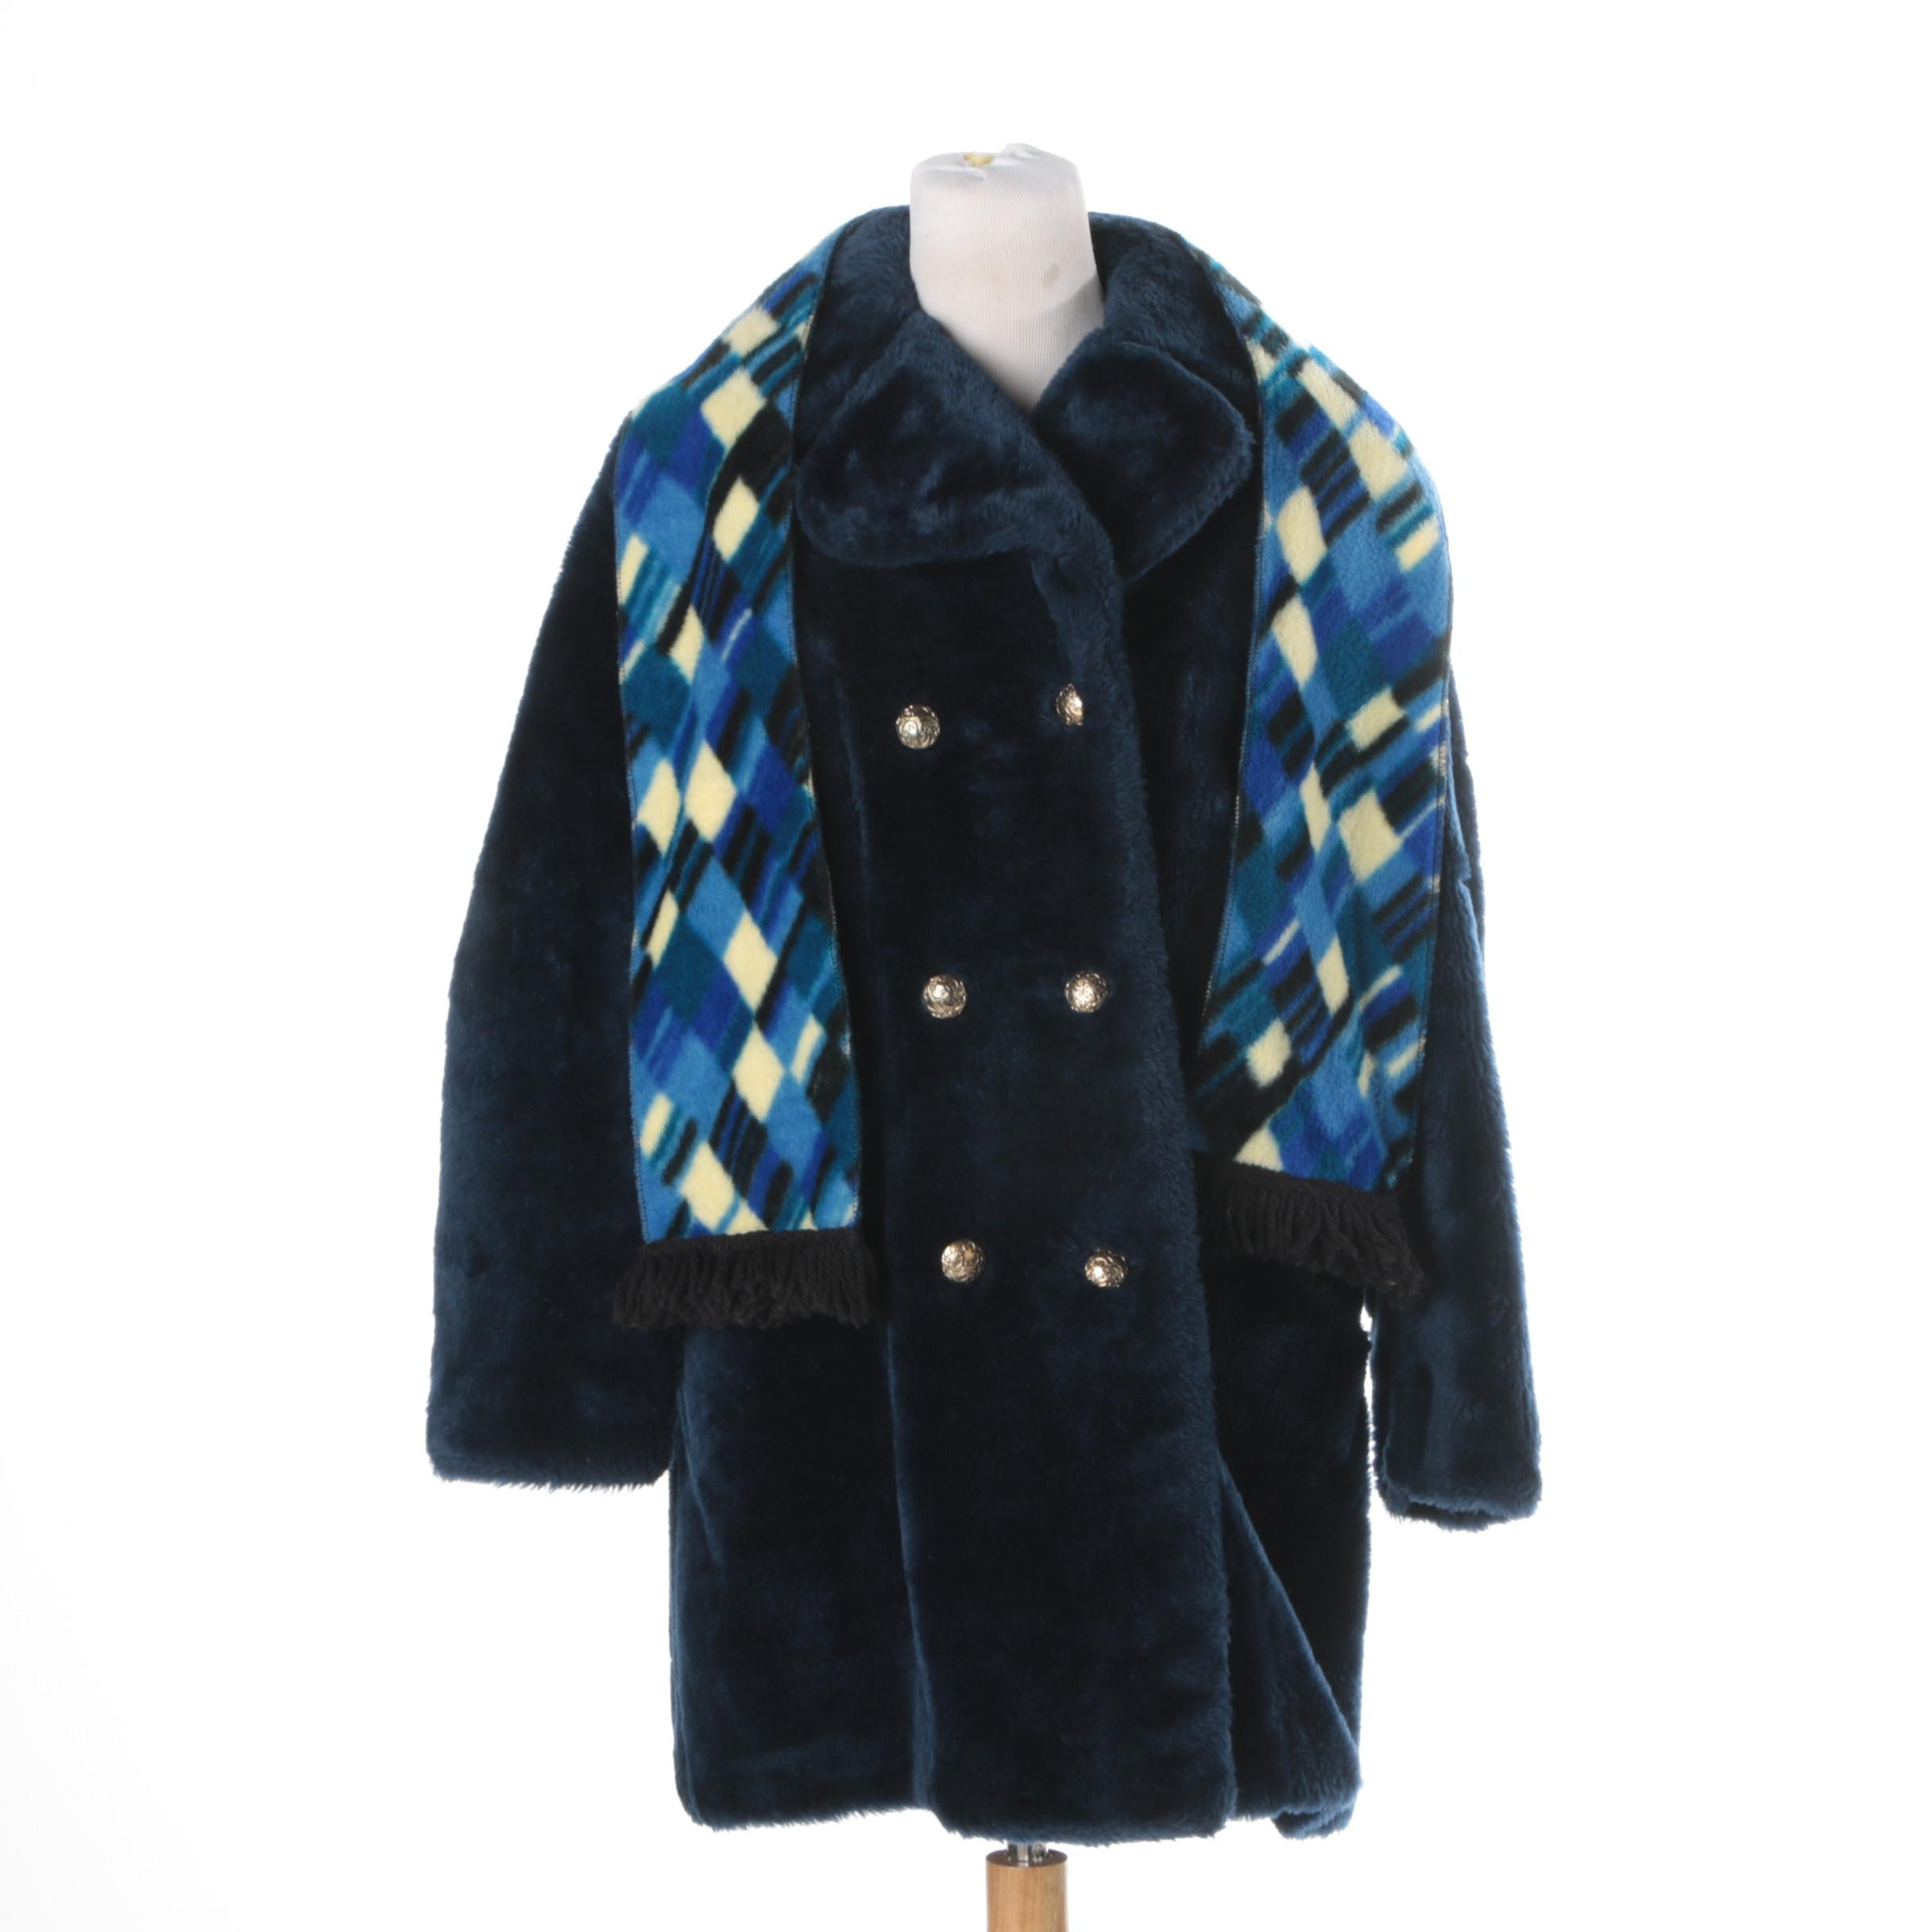 Vintage Sears Faux Fur Coat and Scarf